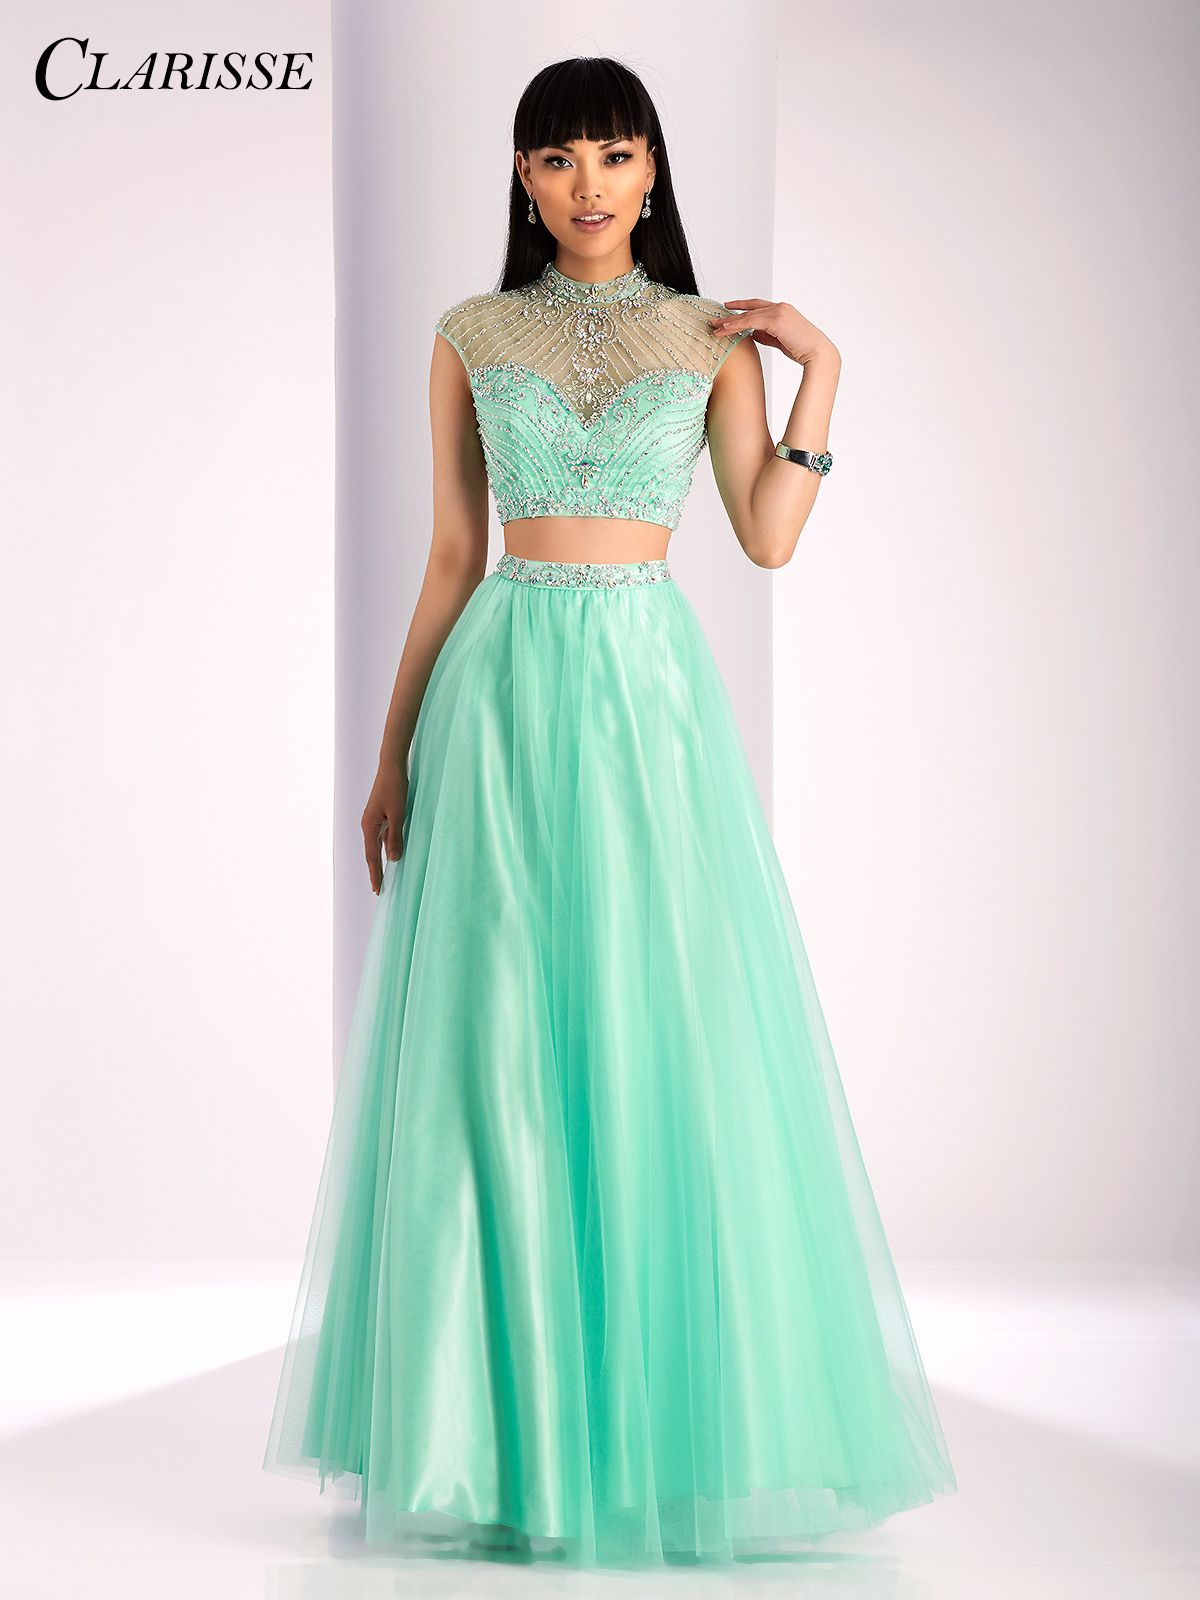 Clarisse Two Piece Ball Gown 3017 | Pastel mint, Ball gown prom ...